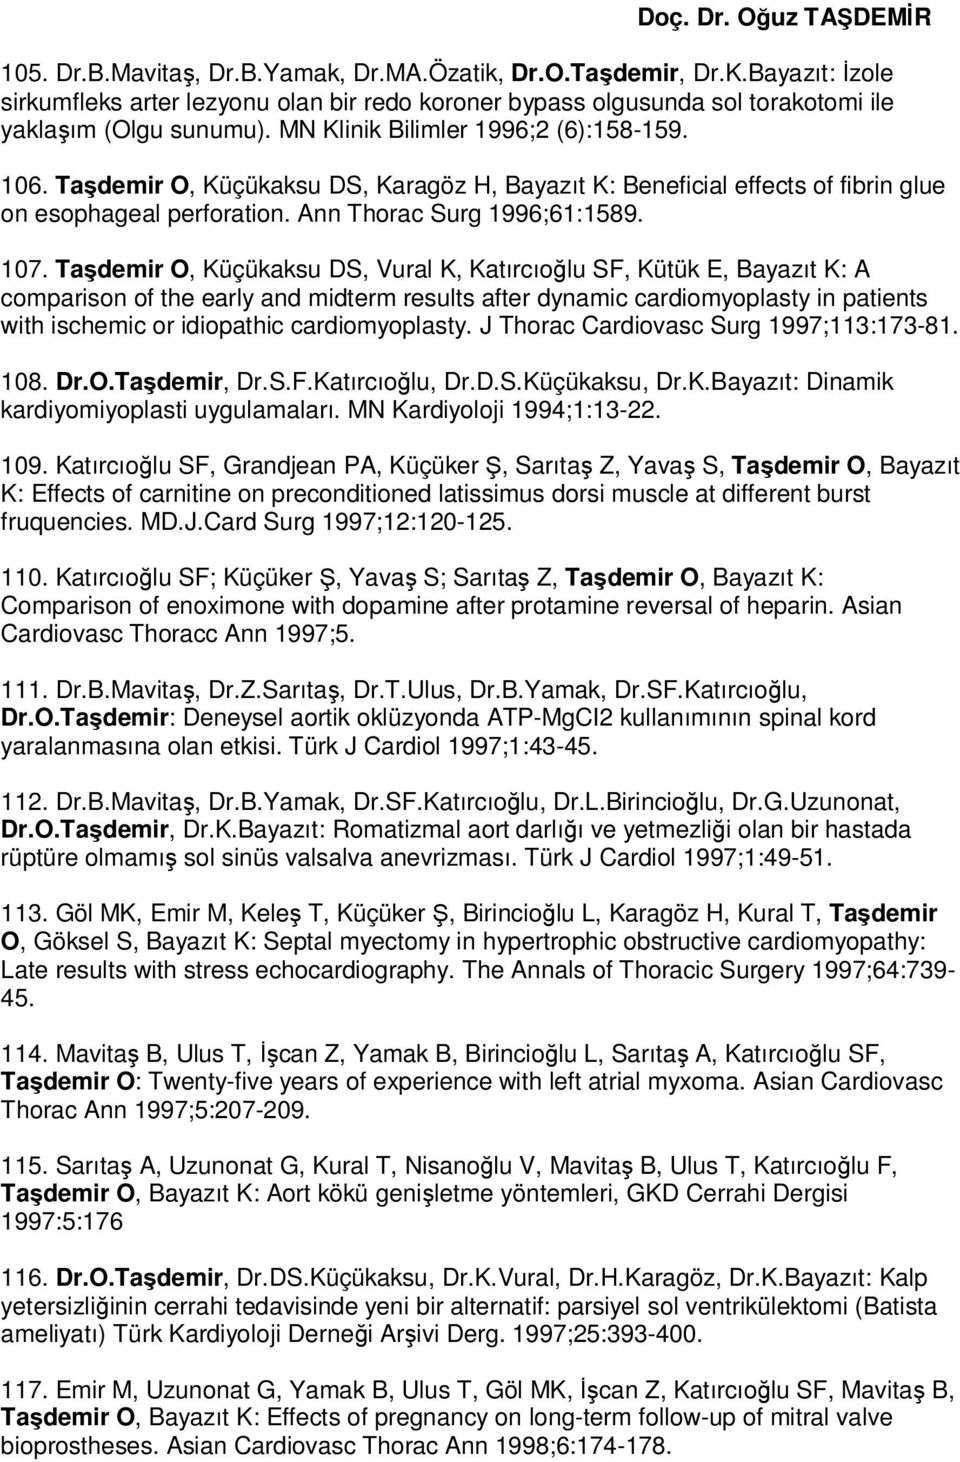 Taşdemir O, Küçükaksu DS, Vural K, Katırcıoğlu SF, Kütük E, Bayazıt K: A comparison of the early and midterm results after dynamic cardiomyoplasty in patients with ischemic or idiopathic